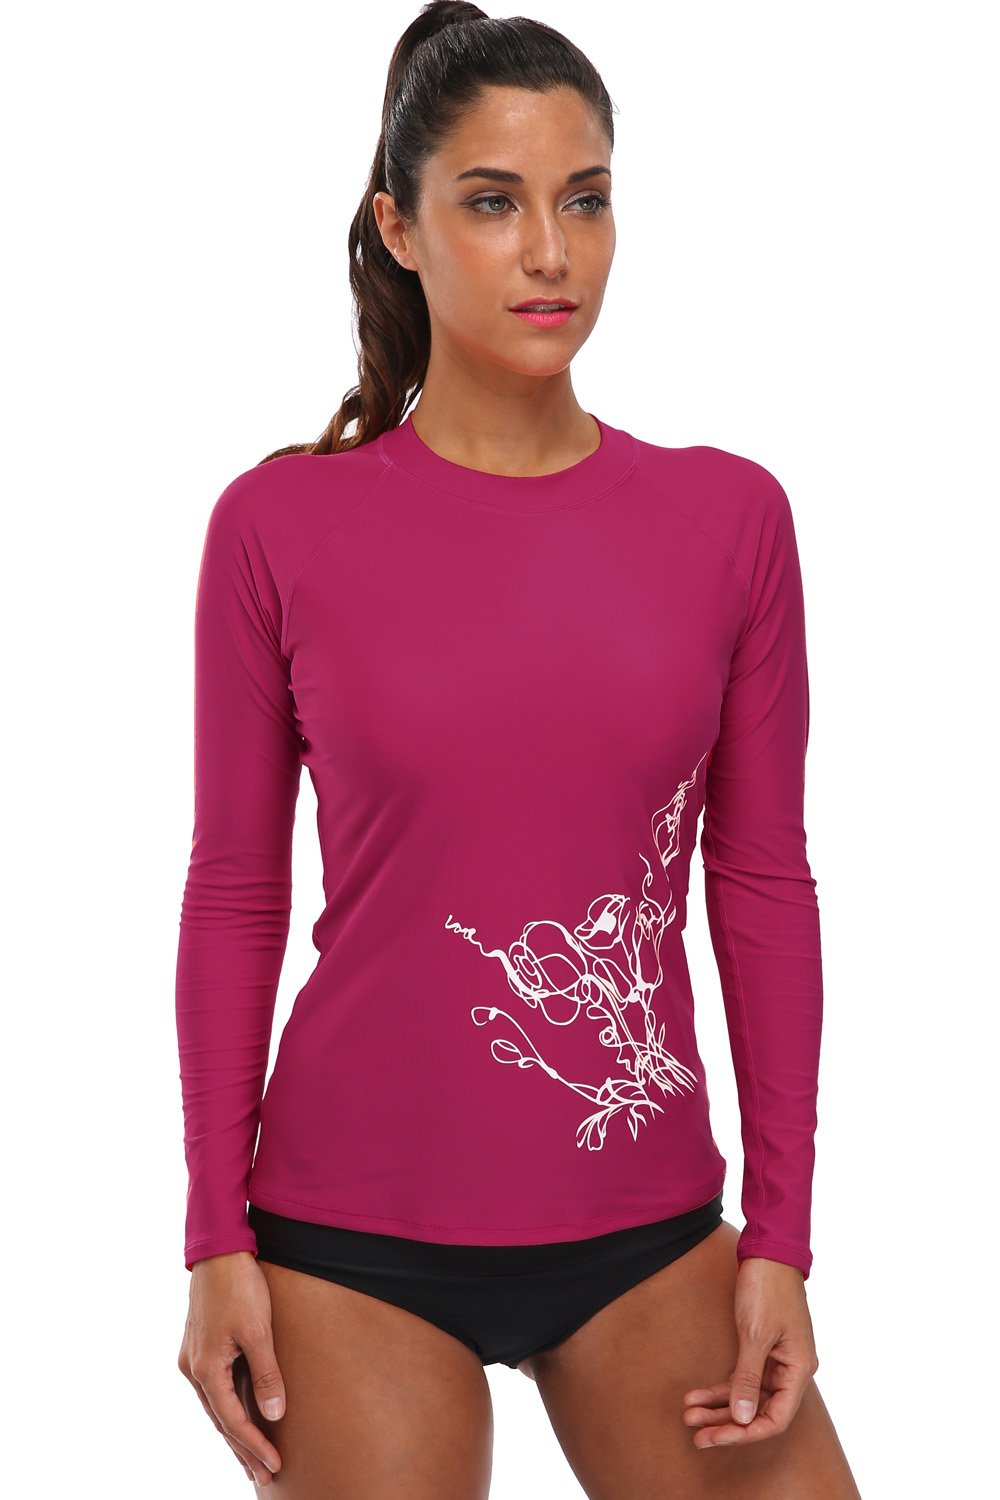 BeautyIn Women's Long-Sleeve Rashguard UPF 50+ Swimwear Rash Guard Athletic Tops,Fuchsia,Large by beautyin